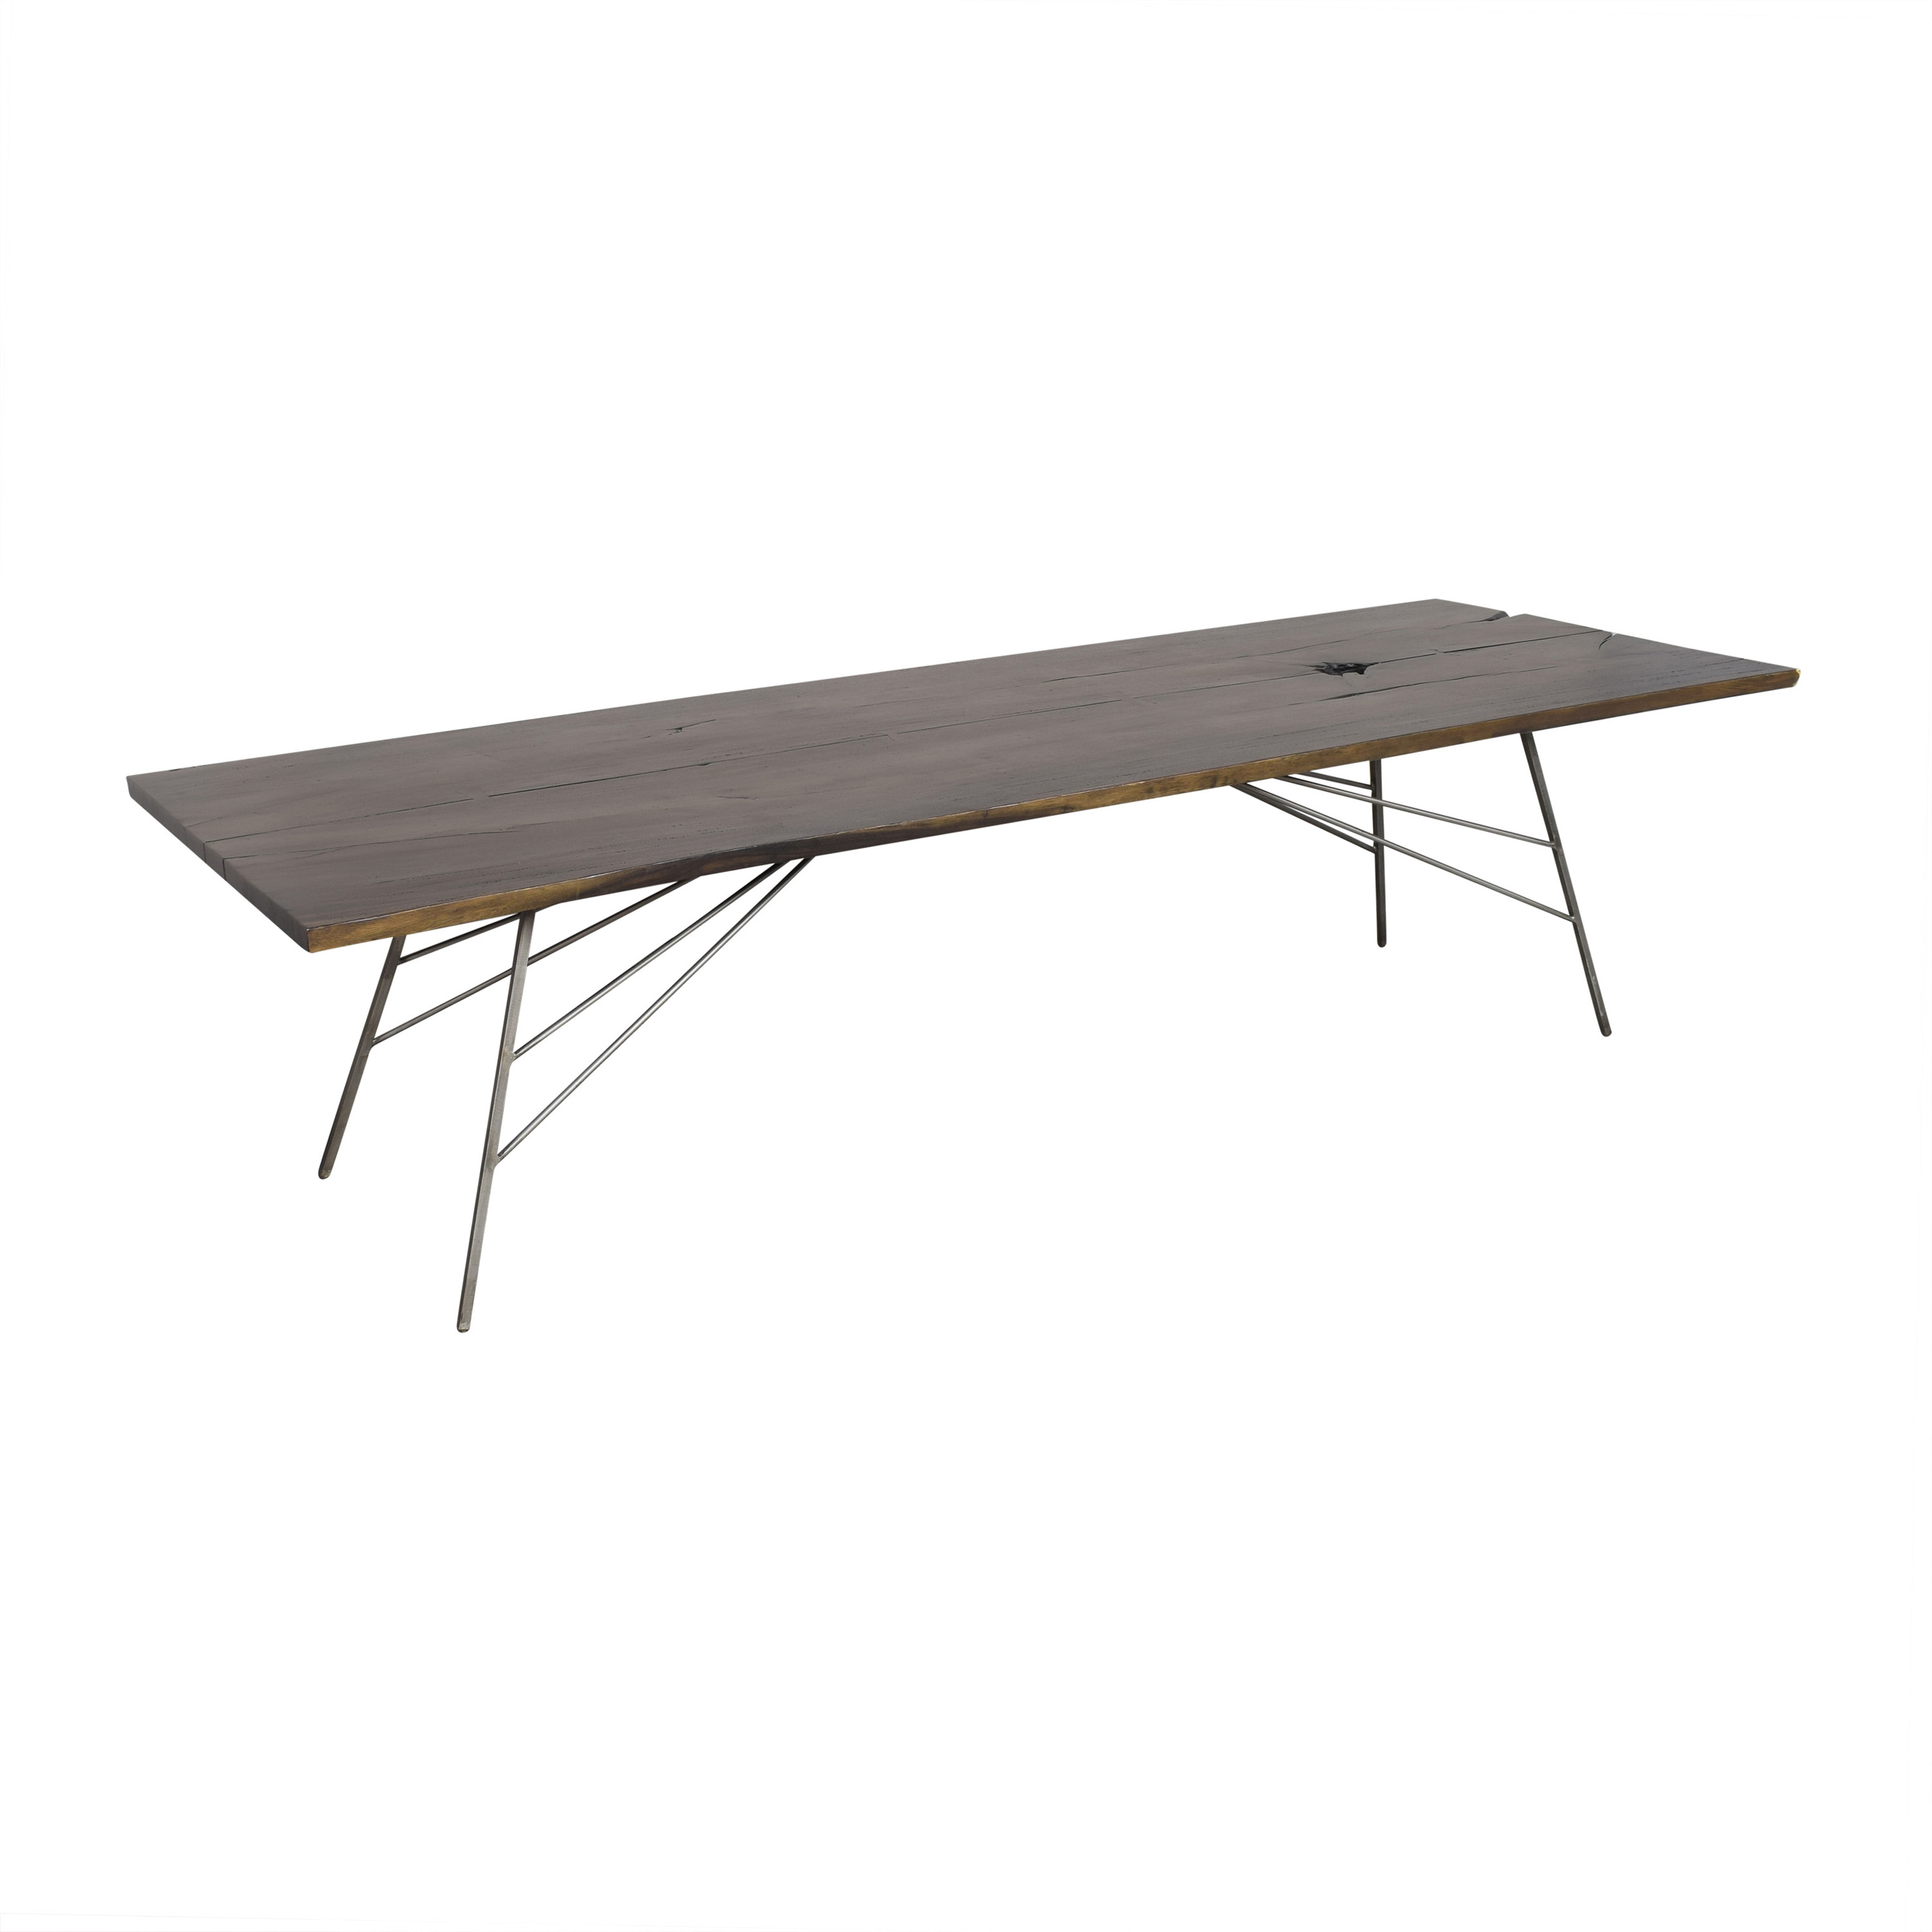 buy ABC Carpet & Home Viento Dining Table ABC Carpet & Home Dinner Tables